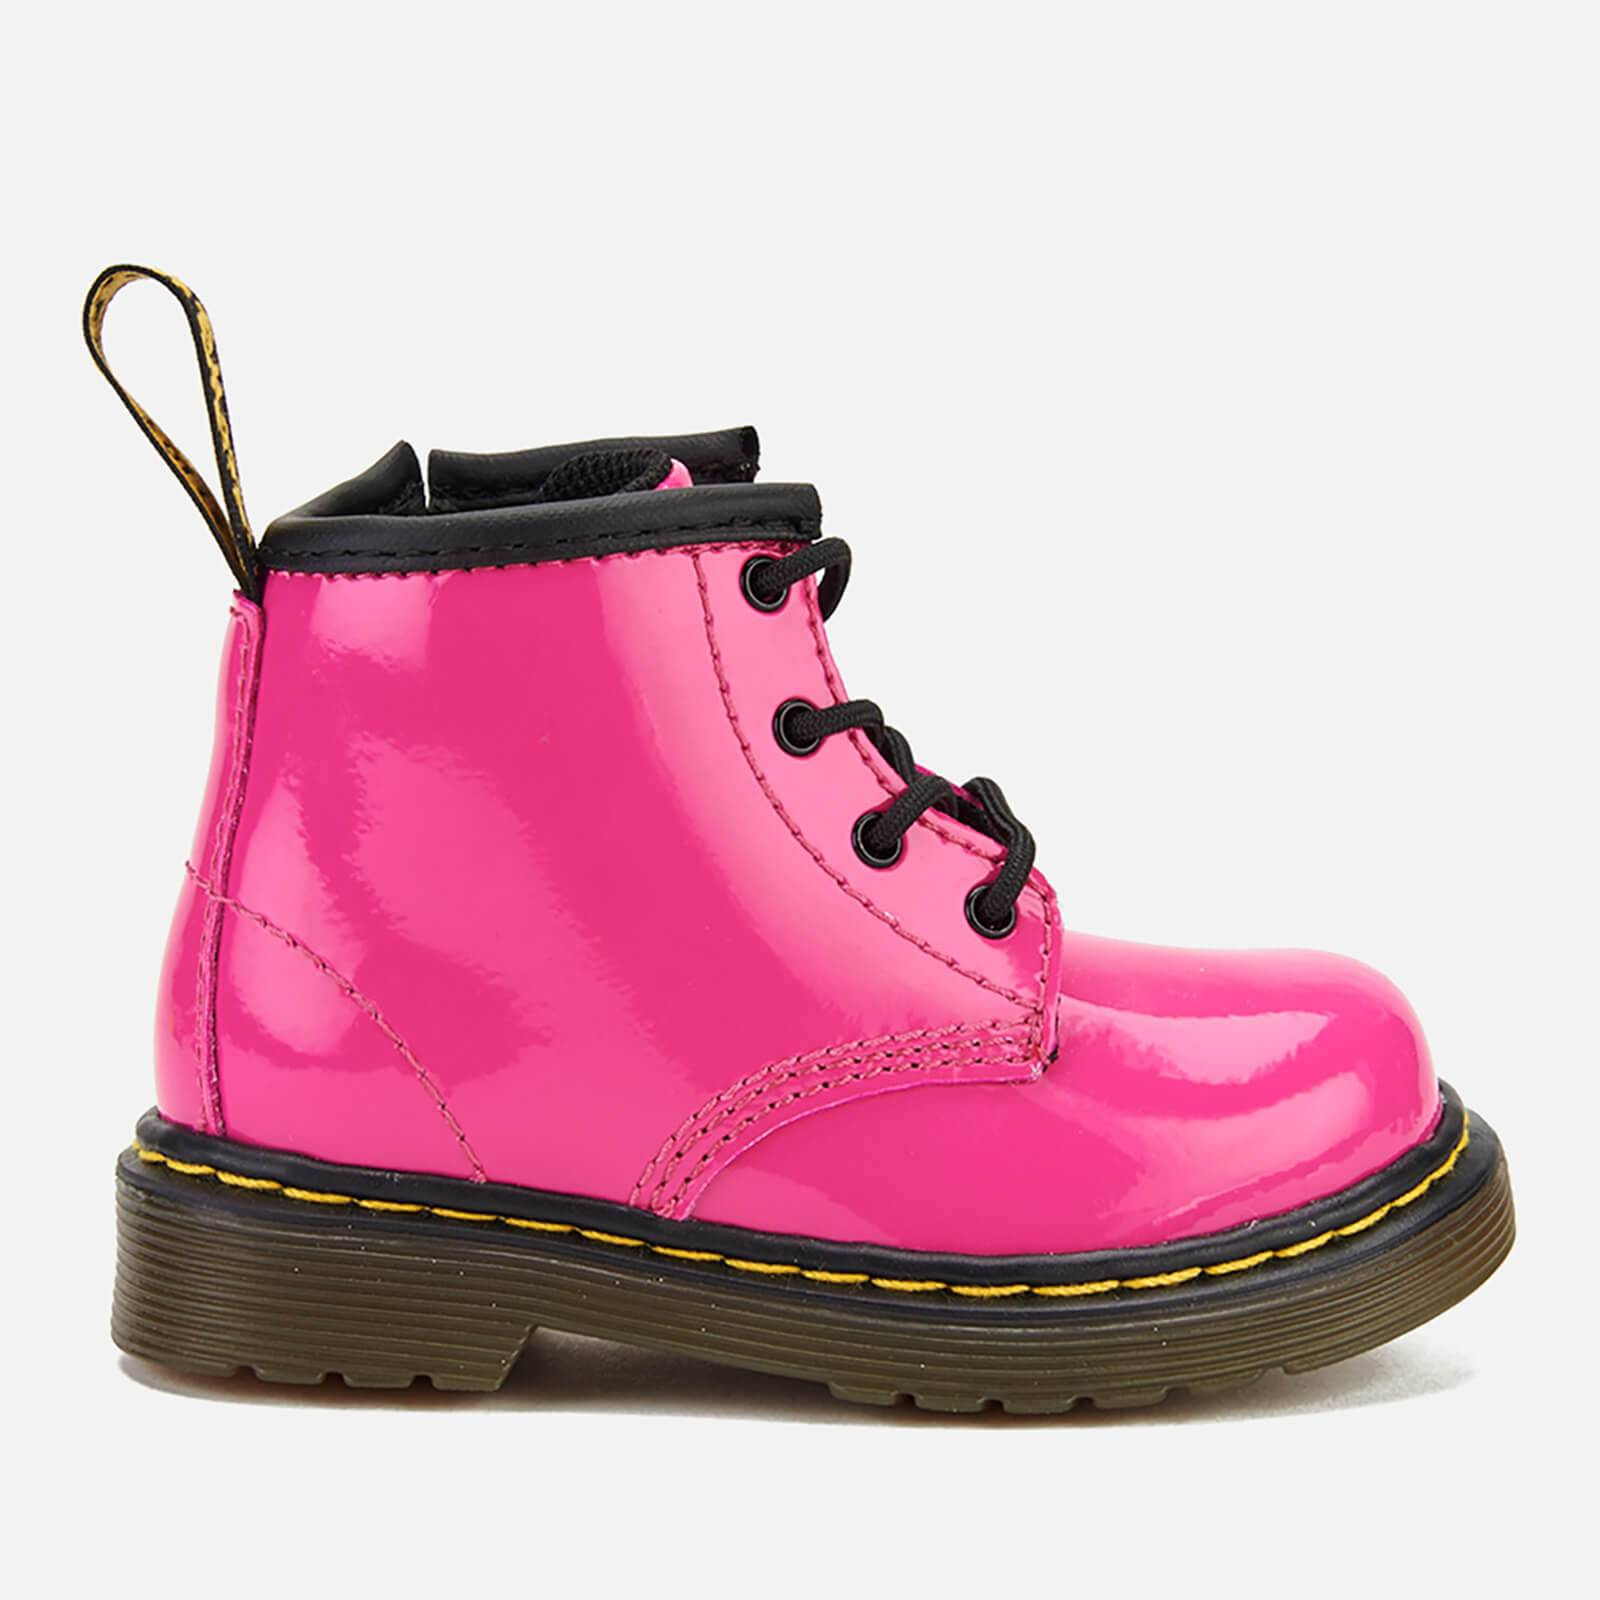 Dr. Martens Toddlers' 1460 I Patent Lamper Lace Up Boots - Hot Pink - UK 4 Toddler